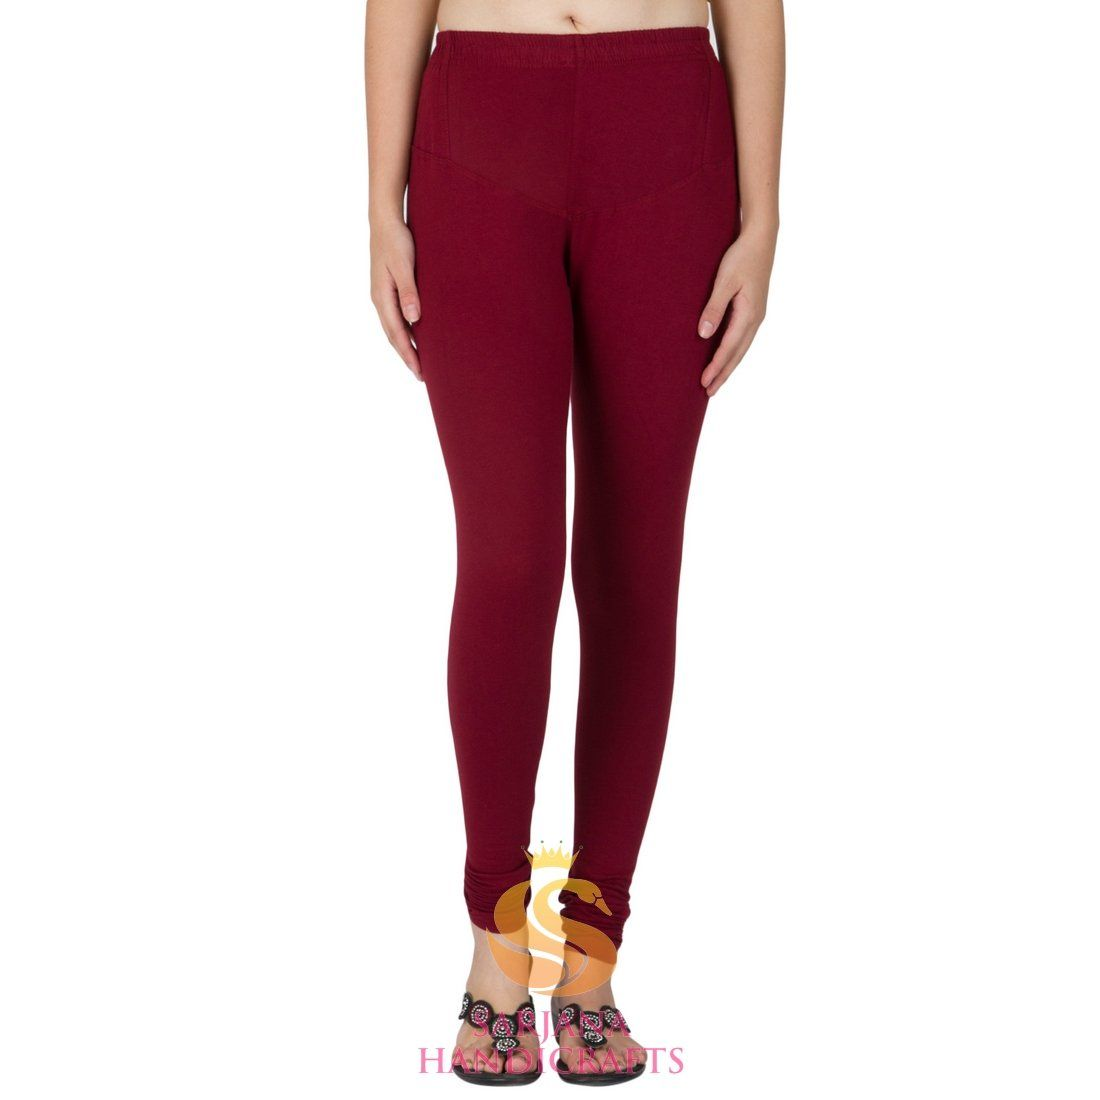 da544ba302 Women Cotton Maroon Color Authentic Churidar Leggings Casual Pants ...